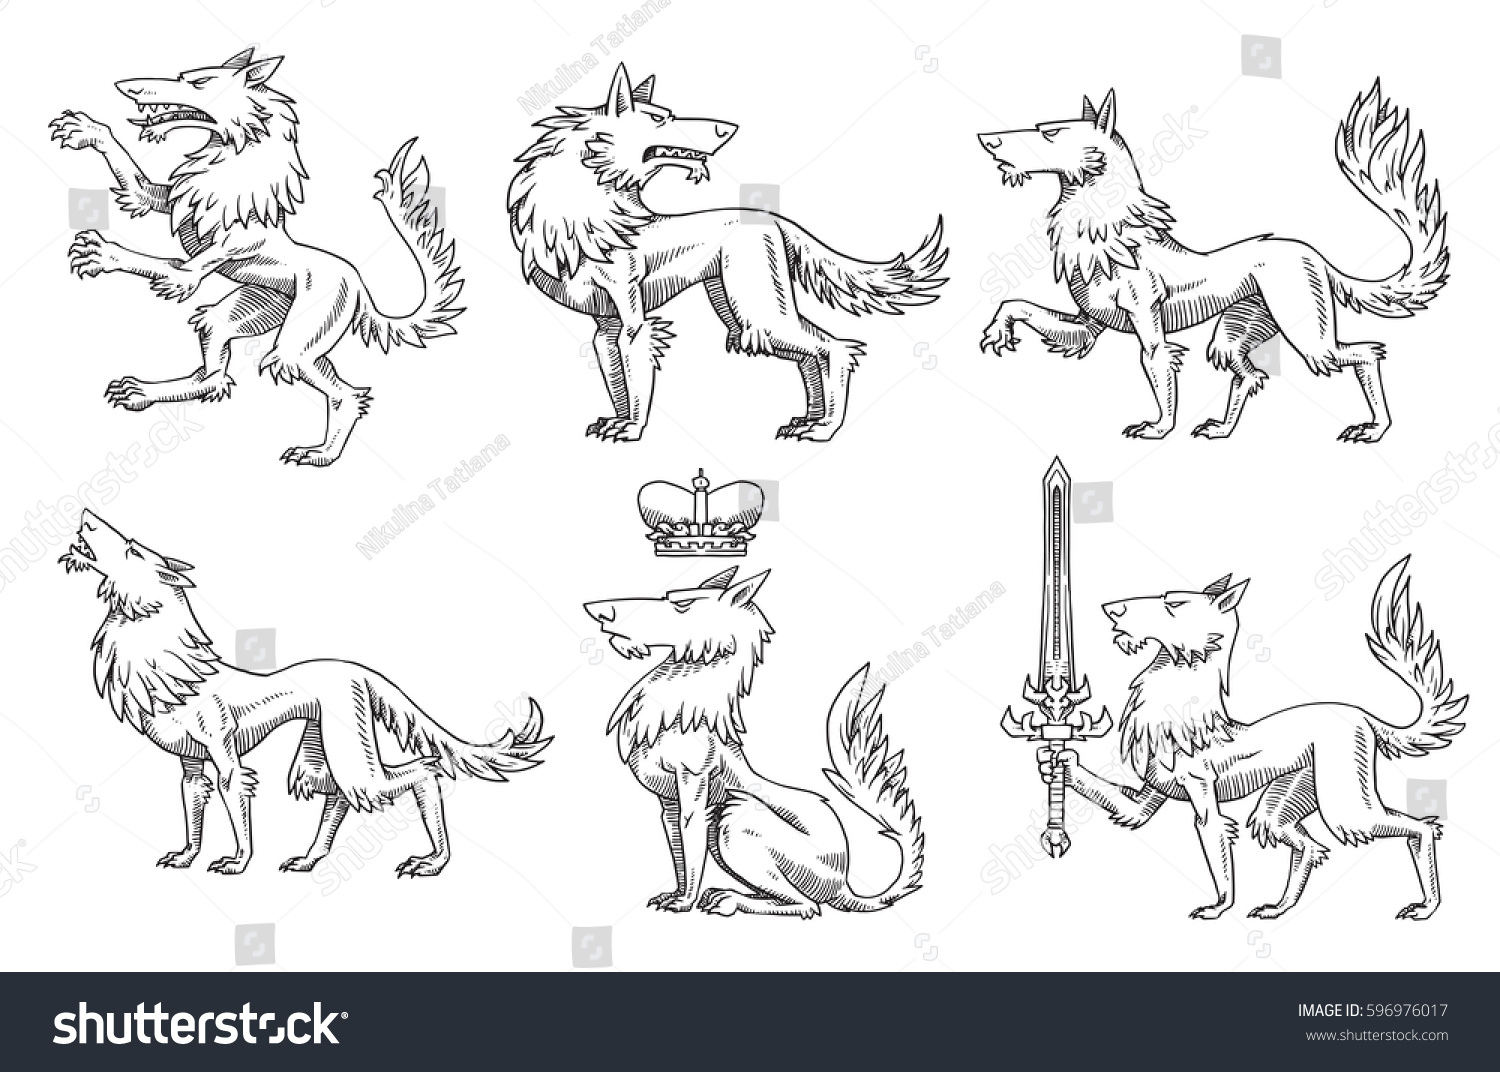 How to breed heraldic dragon - Vector Set Of Images Of Heraldic Wolves In Different Poses On A White Background Coat